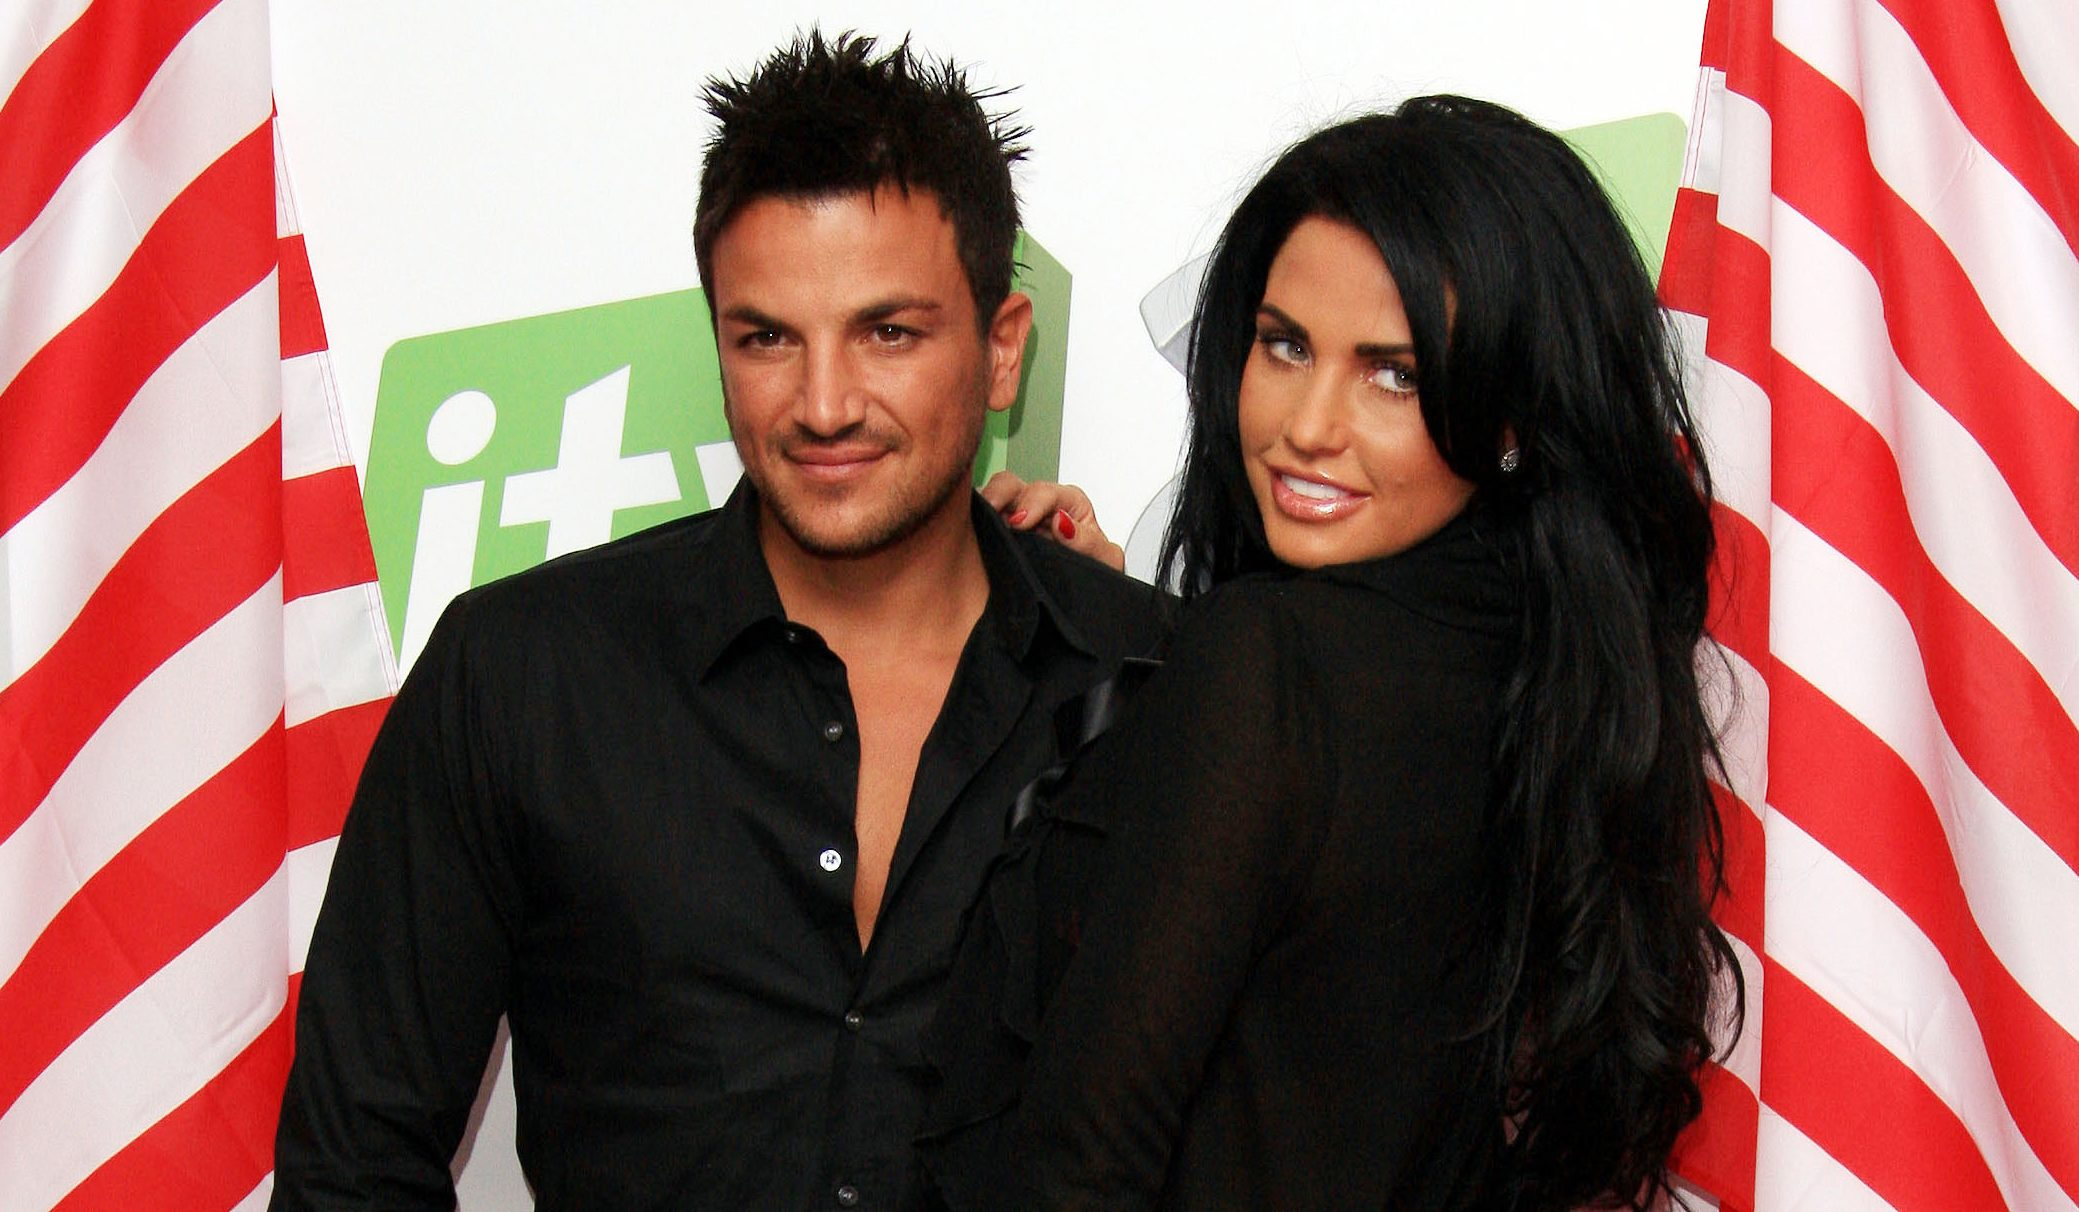 Peter Andre hits back at reports Katie Price 'has been texting him begging him to get back with her'